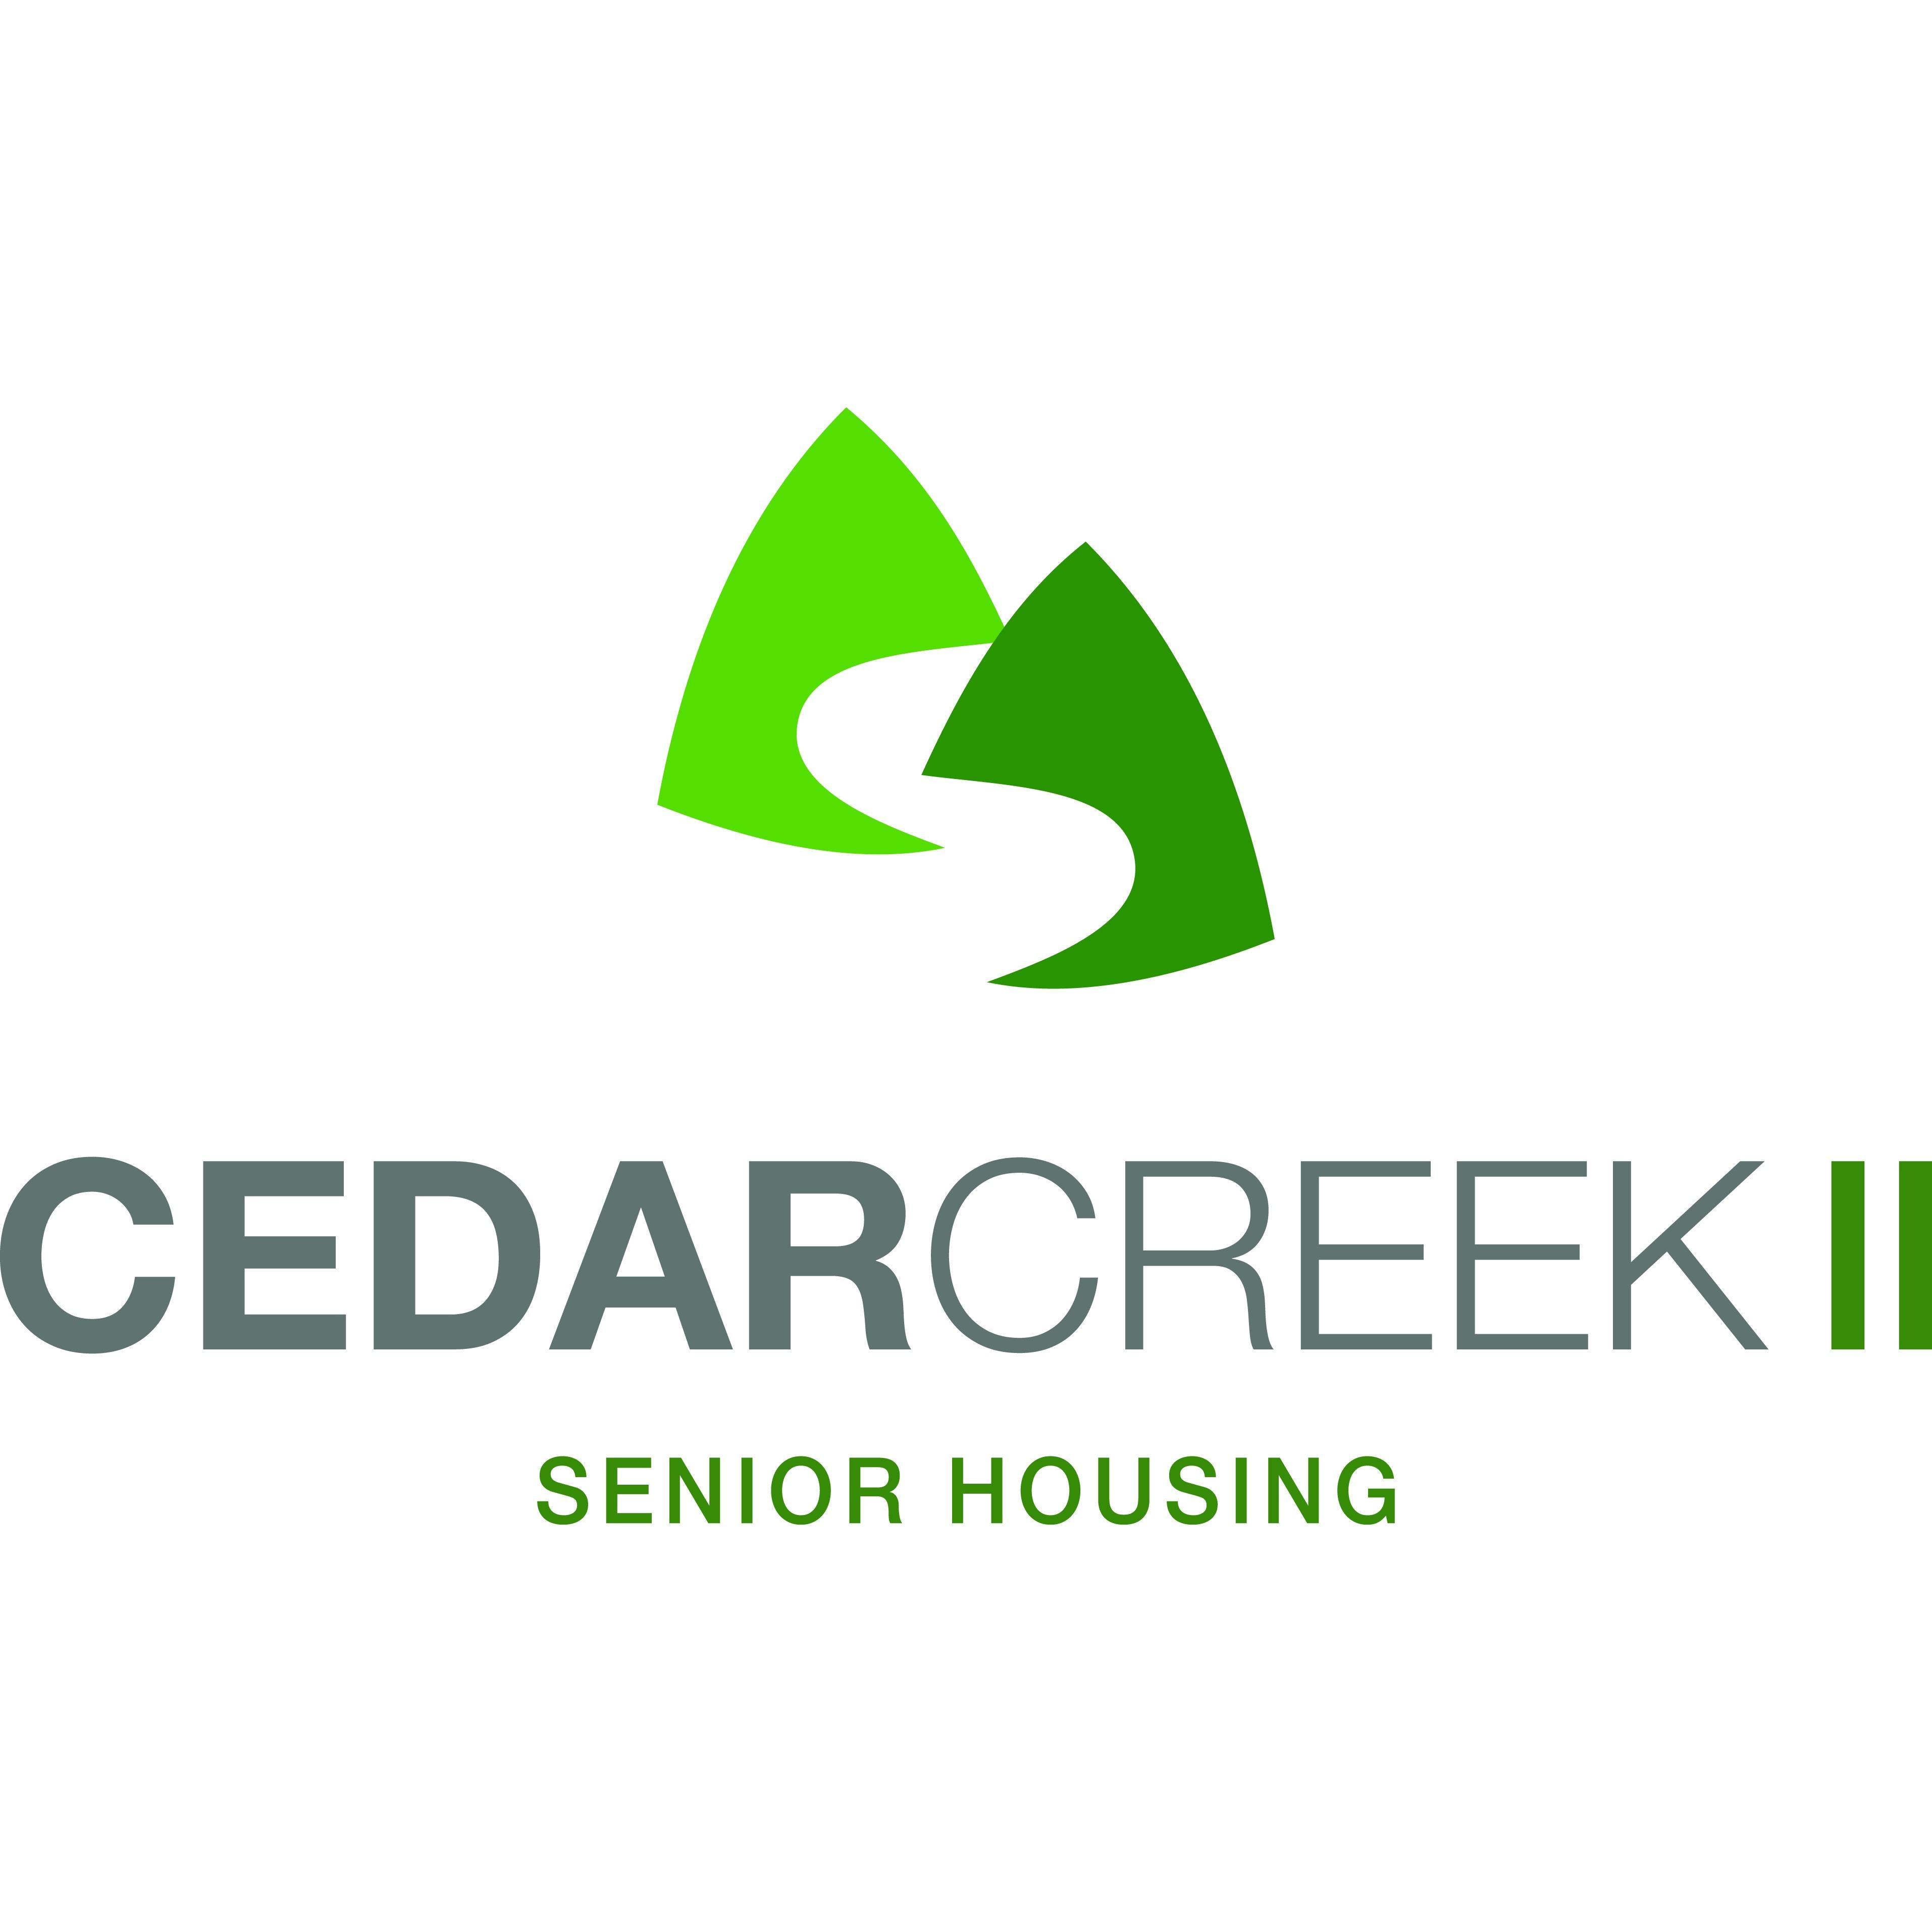 cedar creek senior singles About cedar creek senior apartments 55+ cedar creek senior apartment homes offers spacious one and two bedroom units with a/c, ceiling fan, walk-in closets, refrigerator, stove, dishwasher, garbage disposal, washer/dryer hook-ups and balcony/patio.